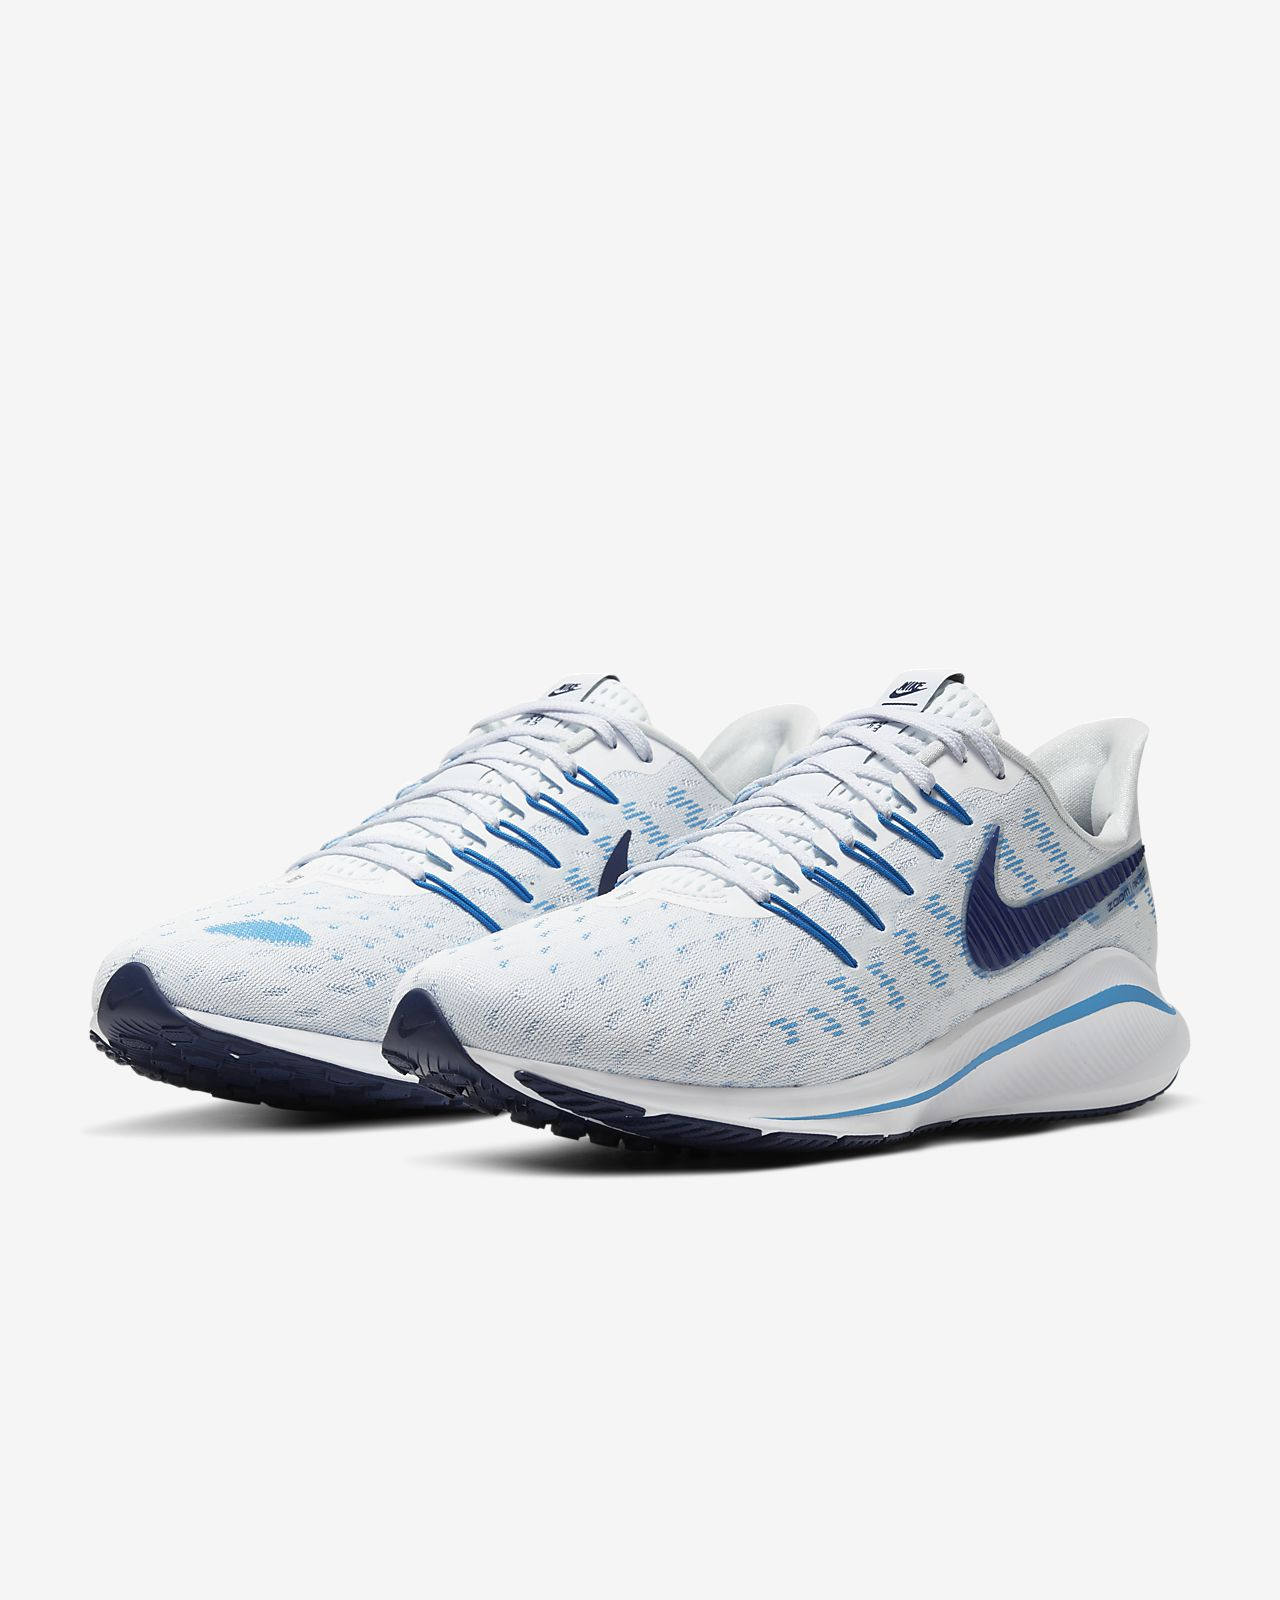 Best Nike Neutral Running Shoes 2018 Women Winter | Carné